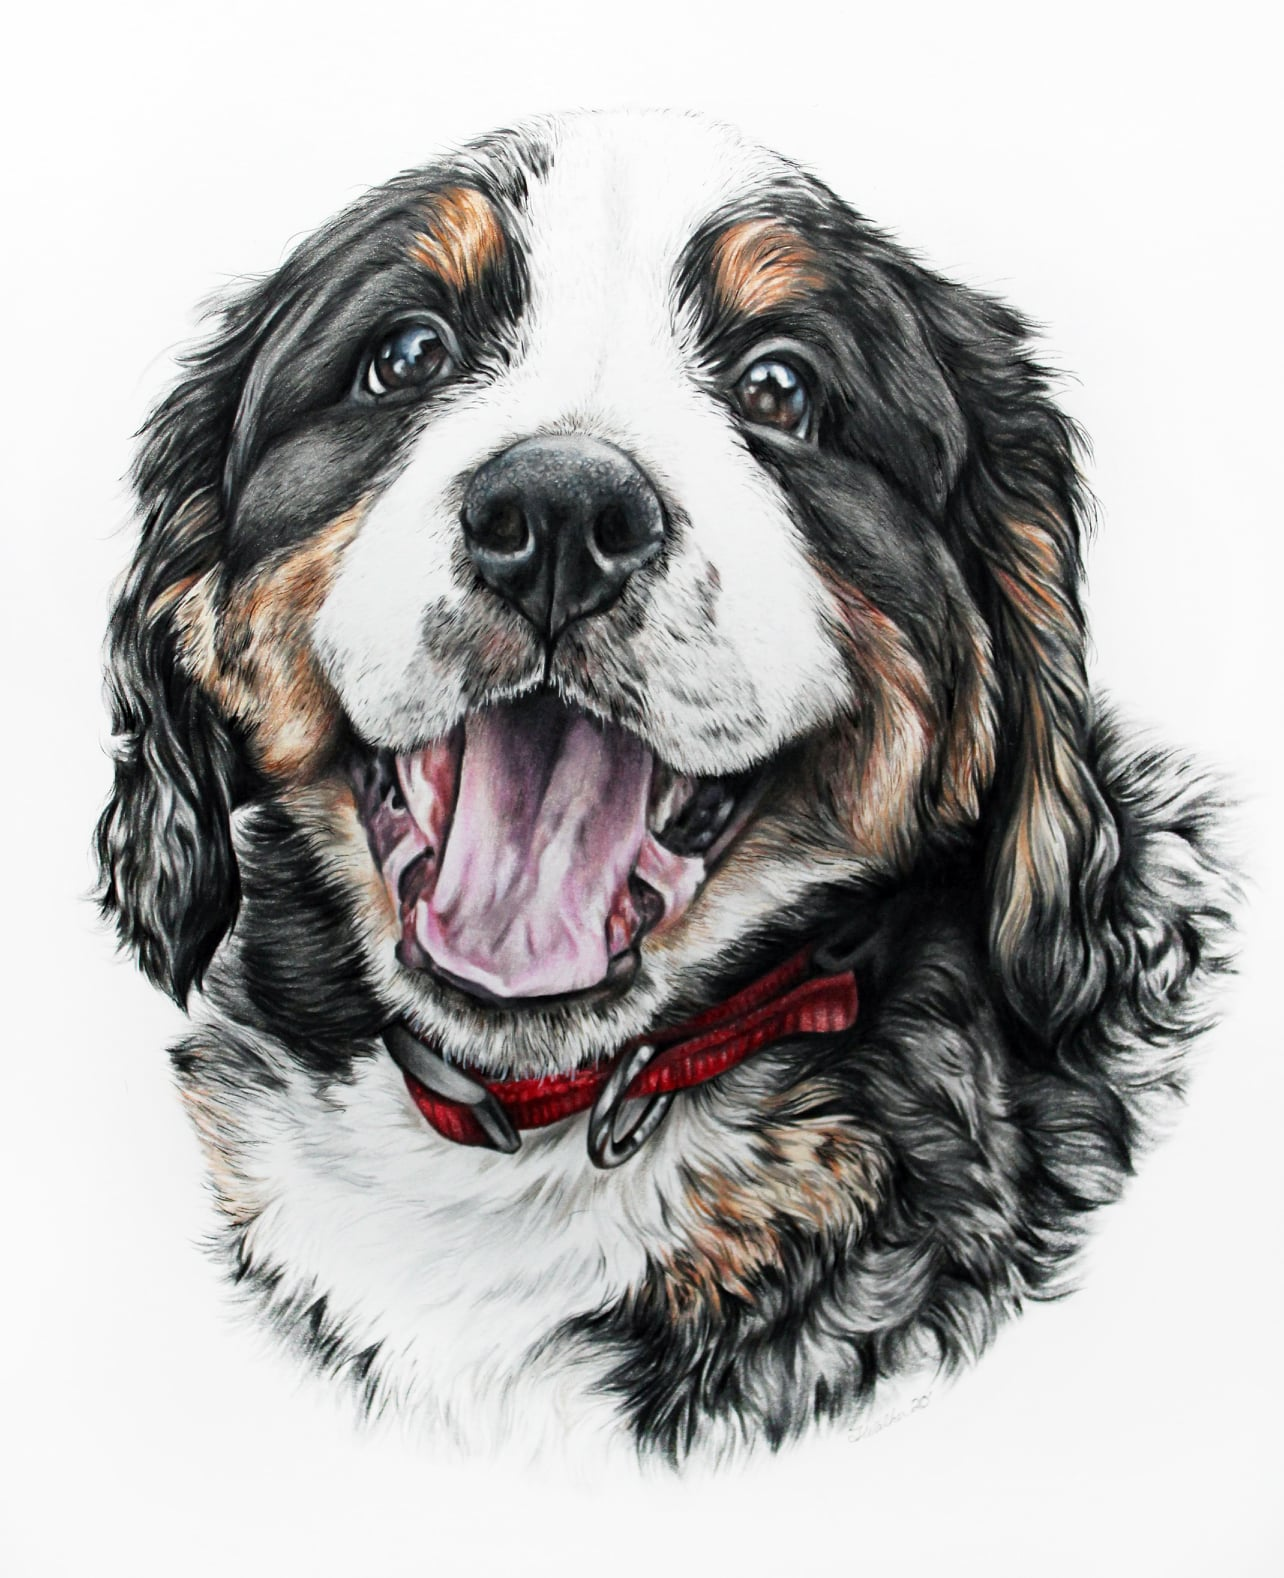 Hand Drawn Custom Pet Portrait of a Bernese Mountain Dog Puppy, TayloredIllustration,  Taylor Marie